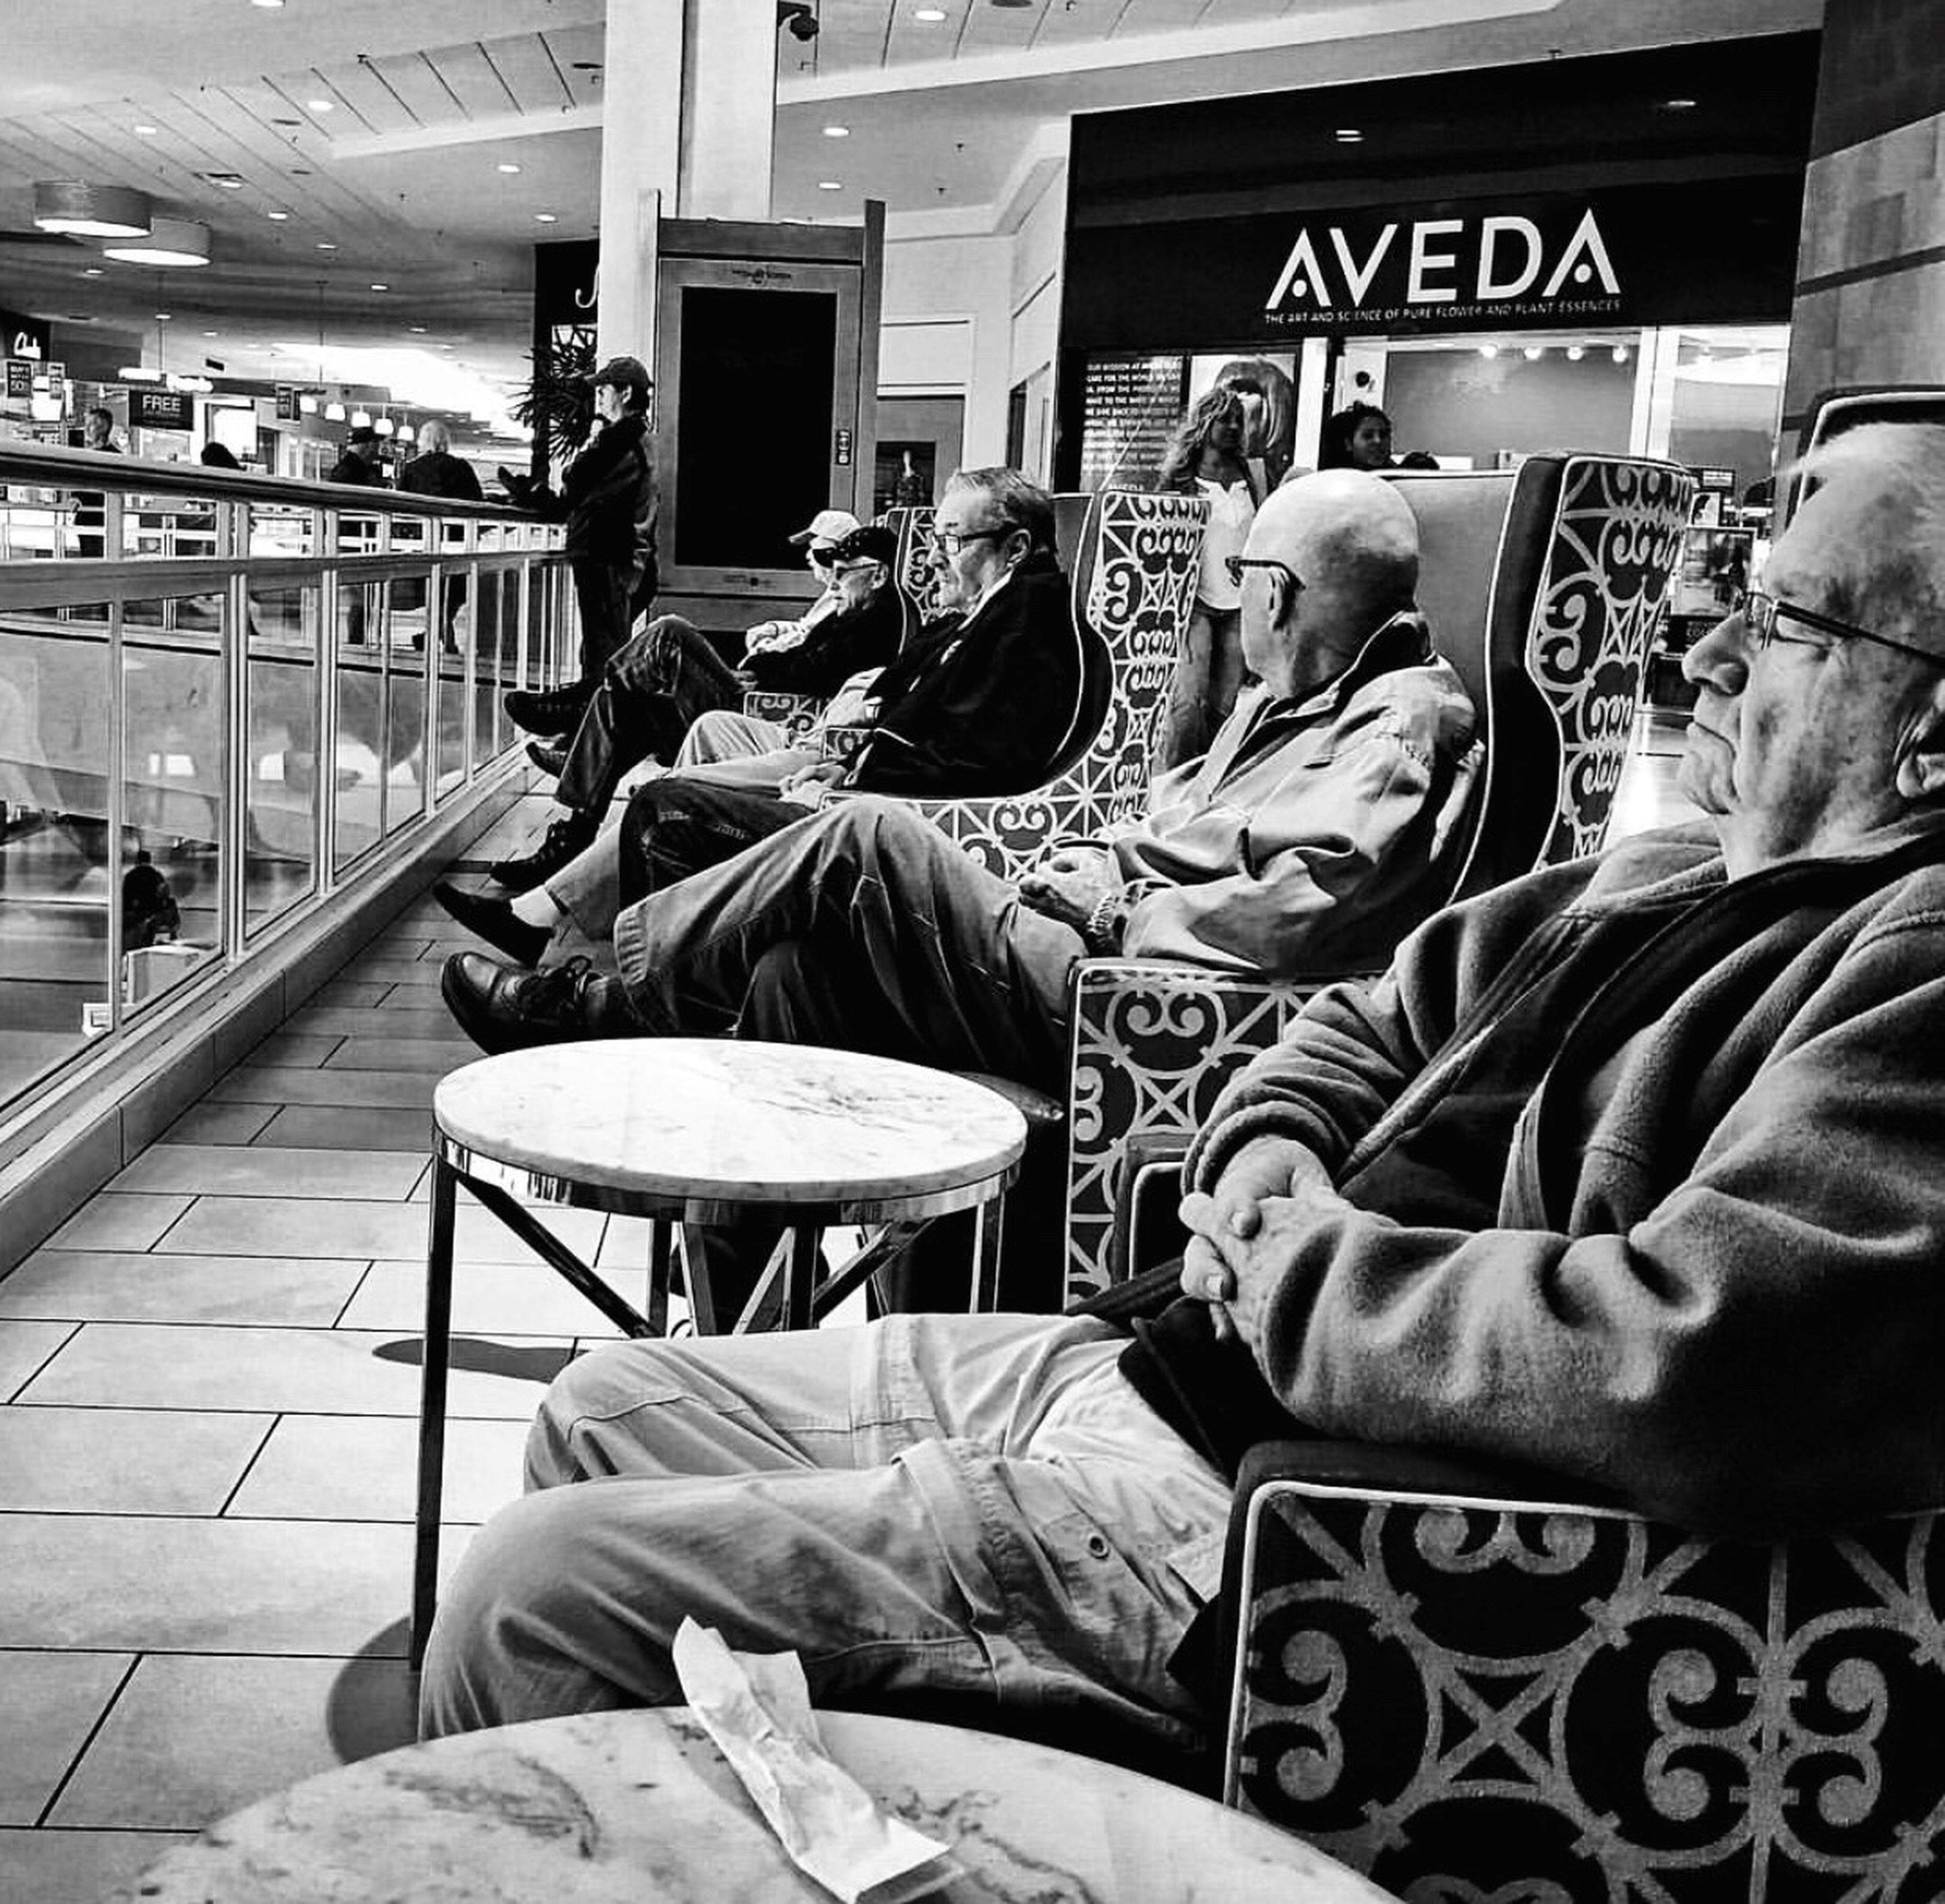 men, retail, lifestyles, market, indoors, market stall, occupation, casual clothing, store, sitting, rear view, incidental people, small business, working, shopping, business, city